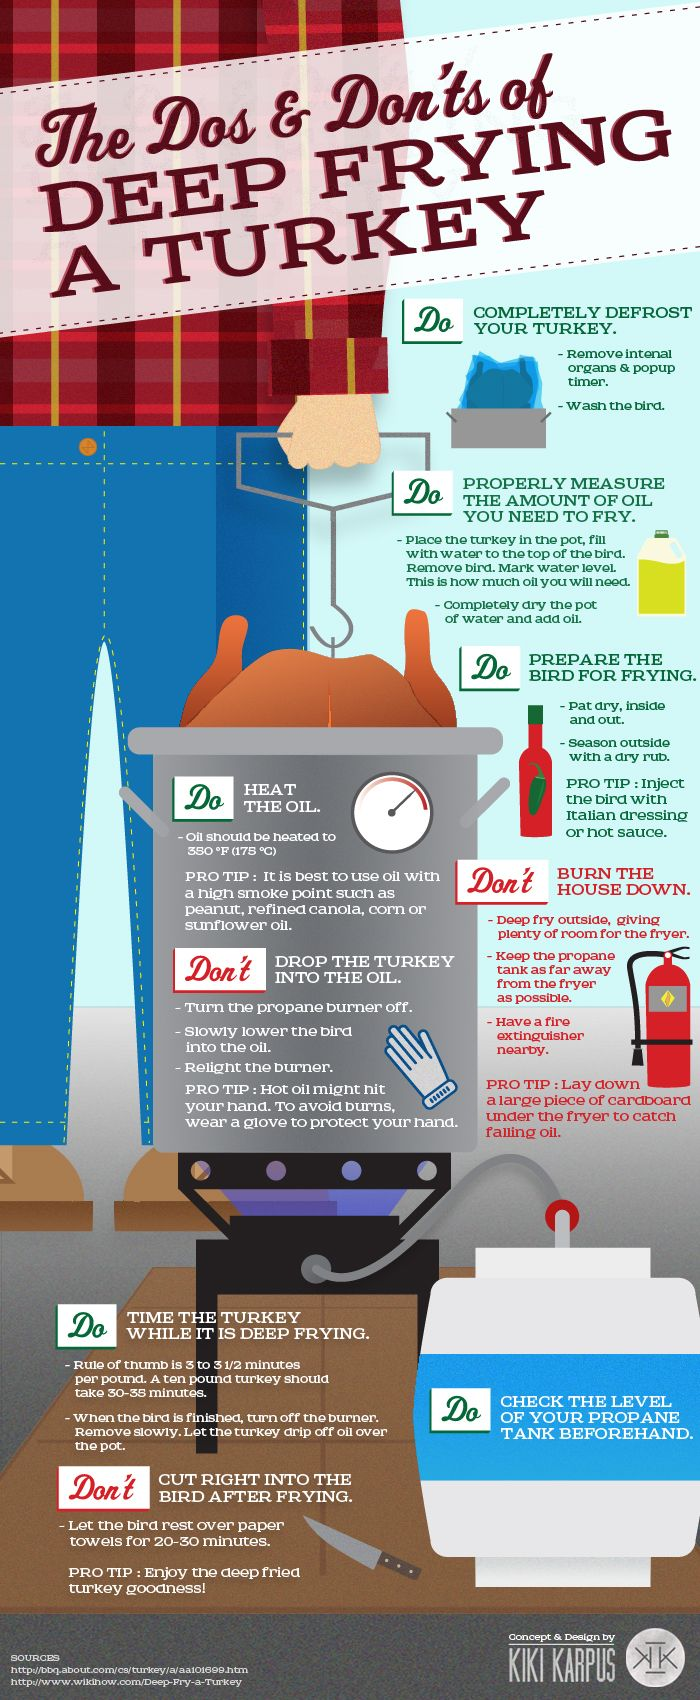 The Dos Don Ts Of Deep Frying A Turkey By Kiki Karpus Fried Turkey Deep Fried Turkey Fried Turkey Recipes